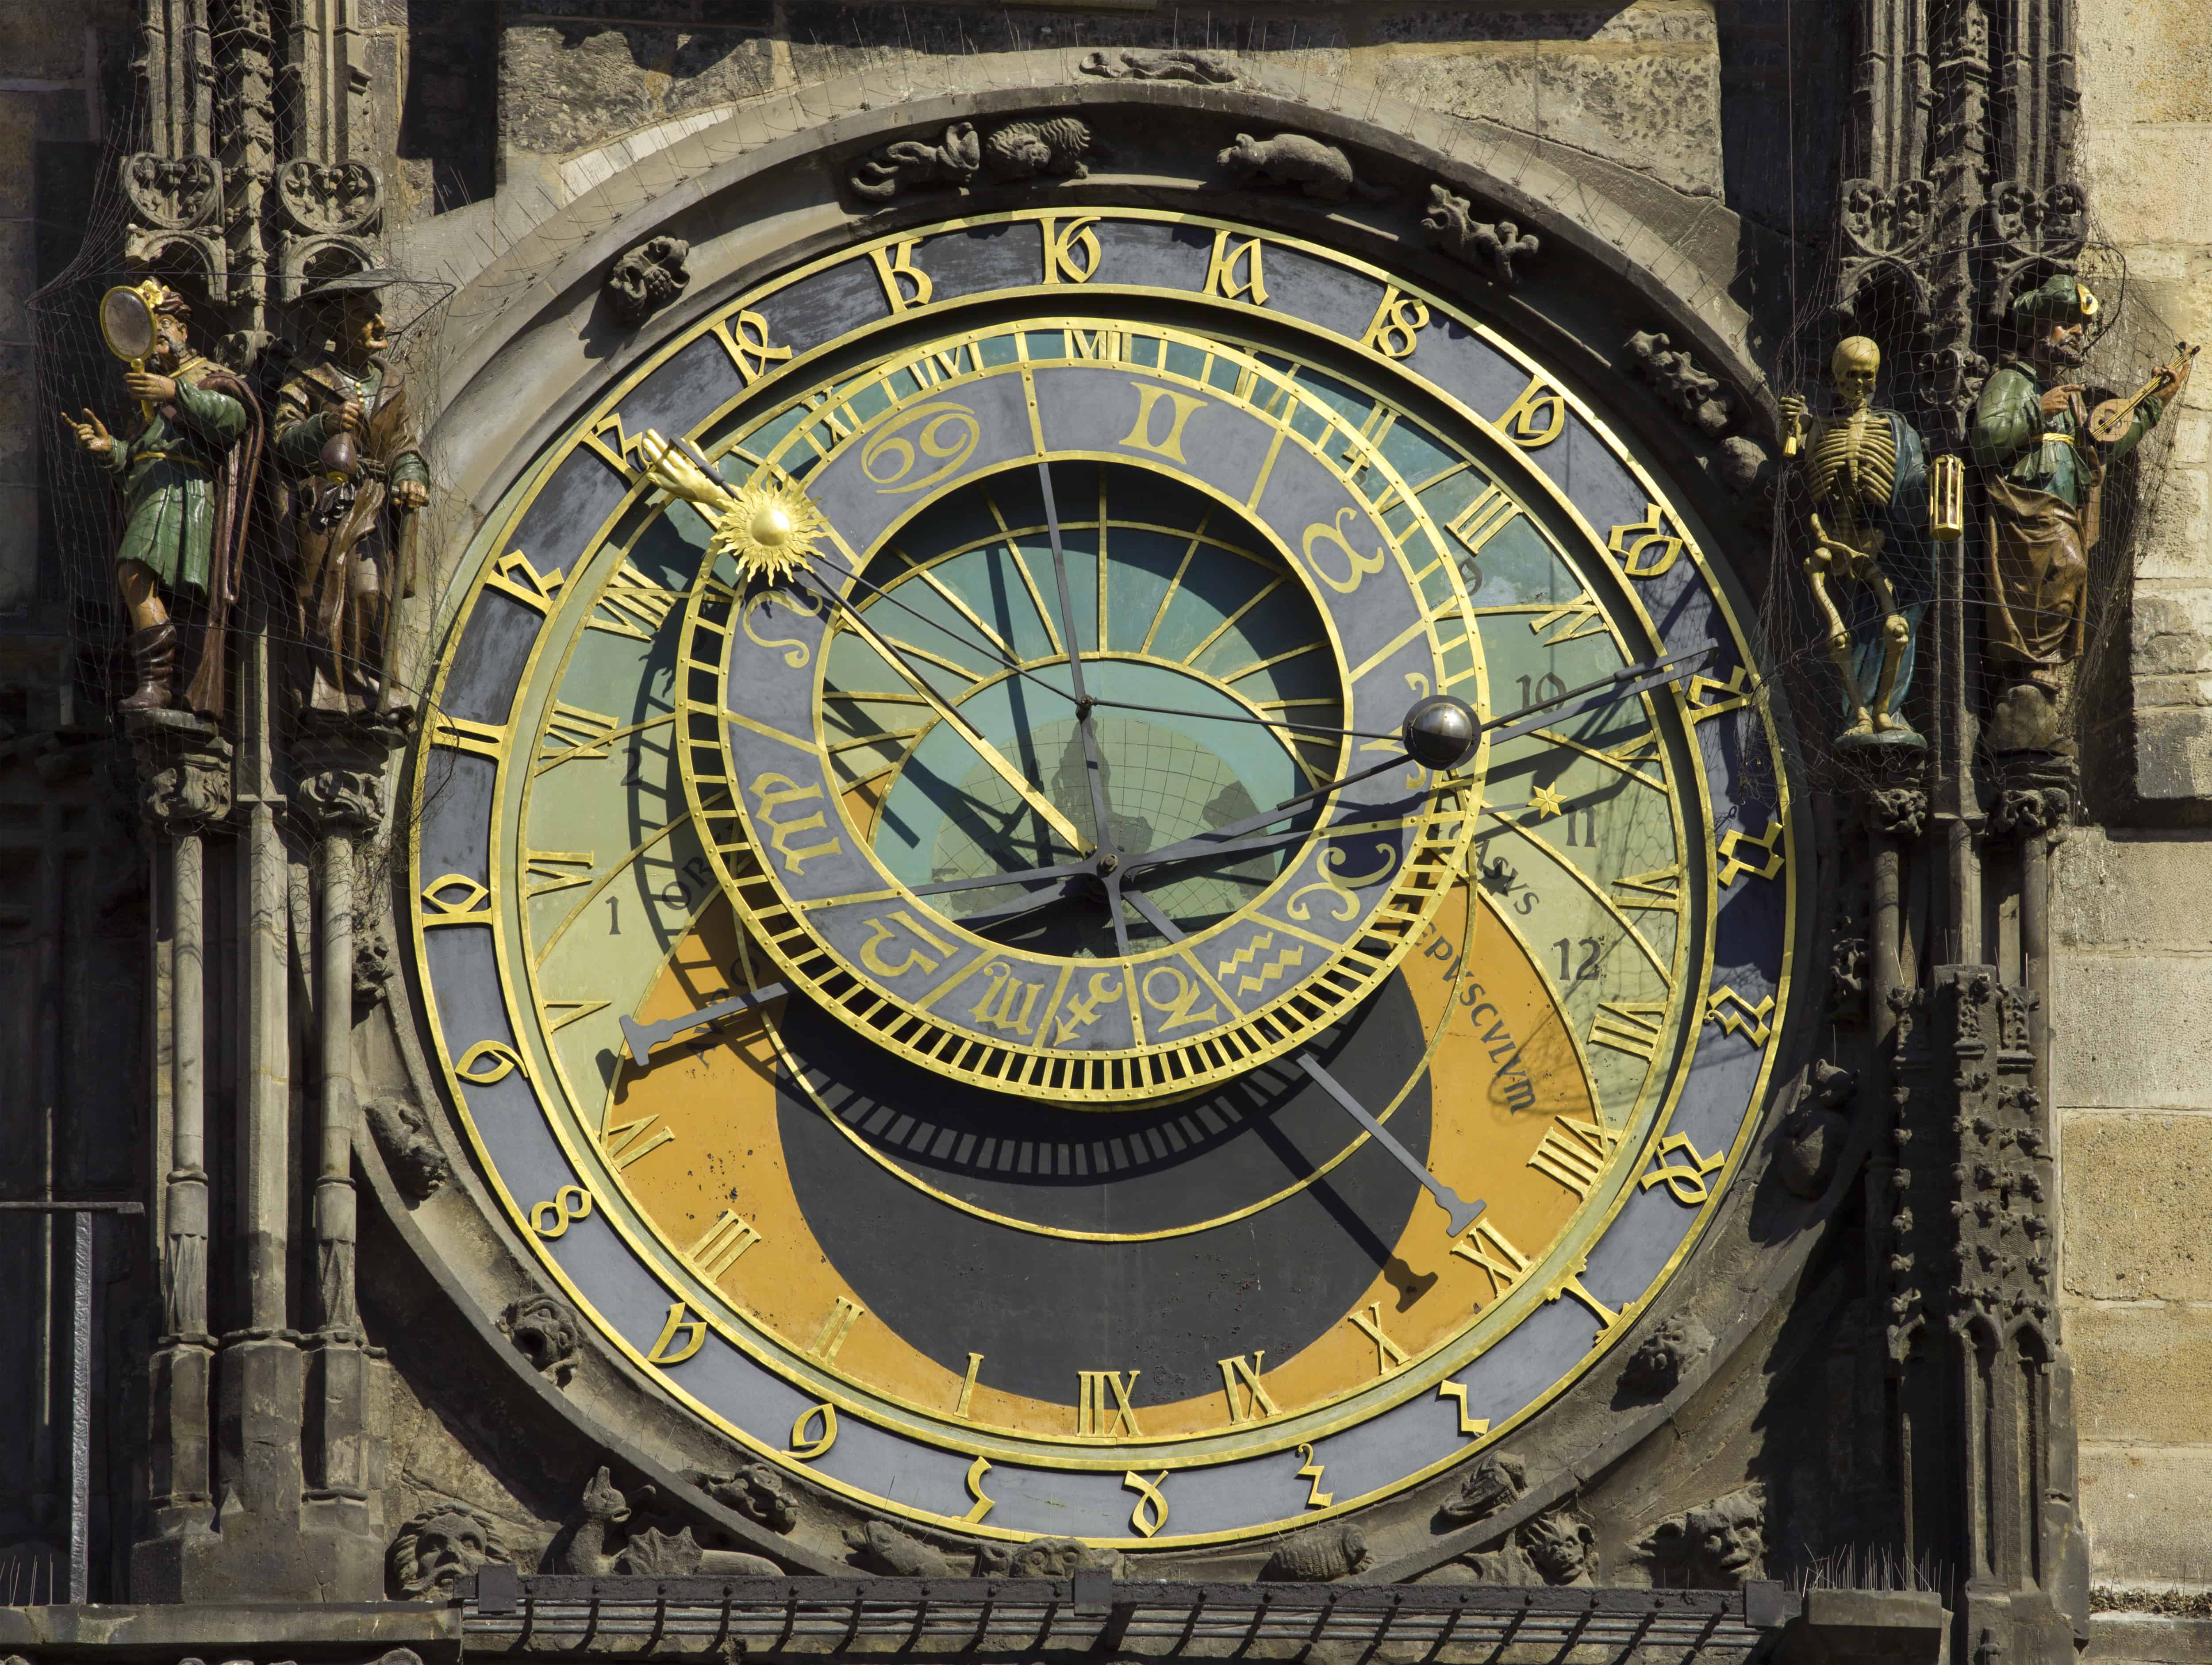 Astronomical Clock in Old Town Square